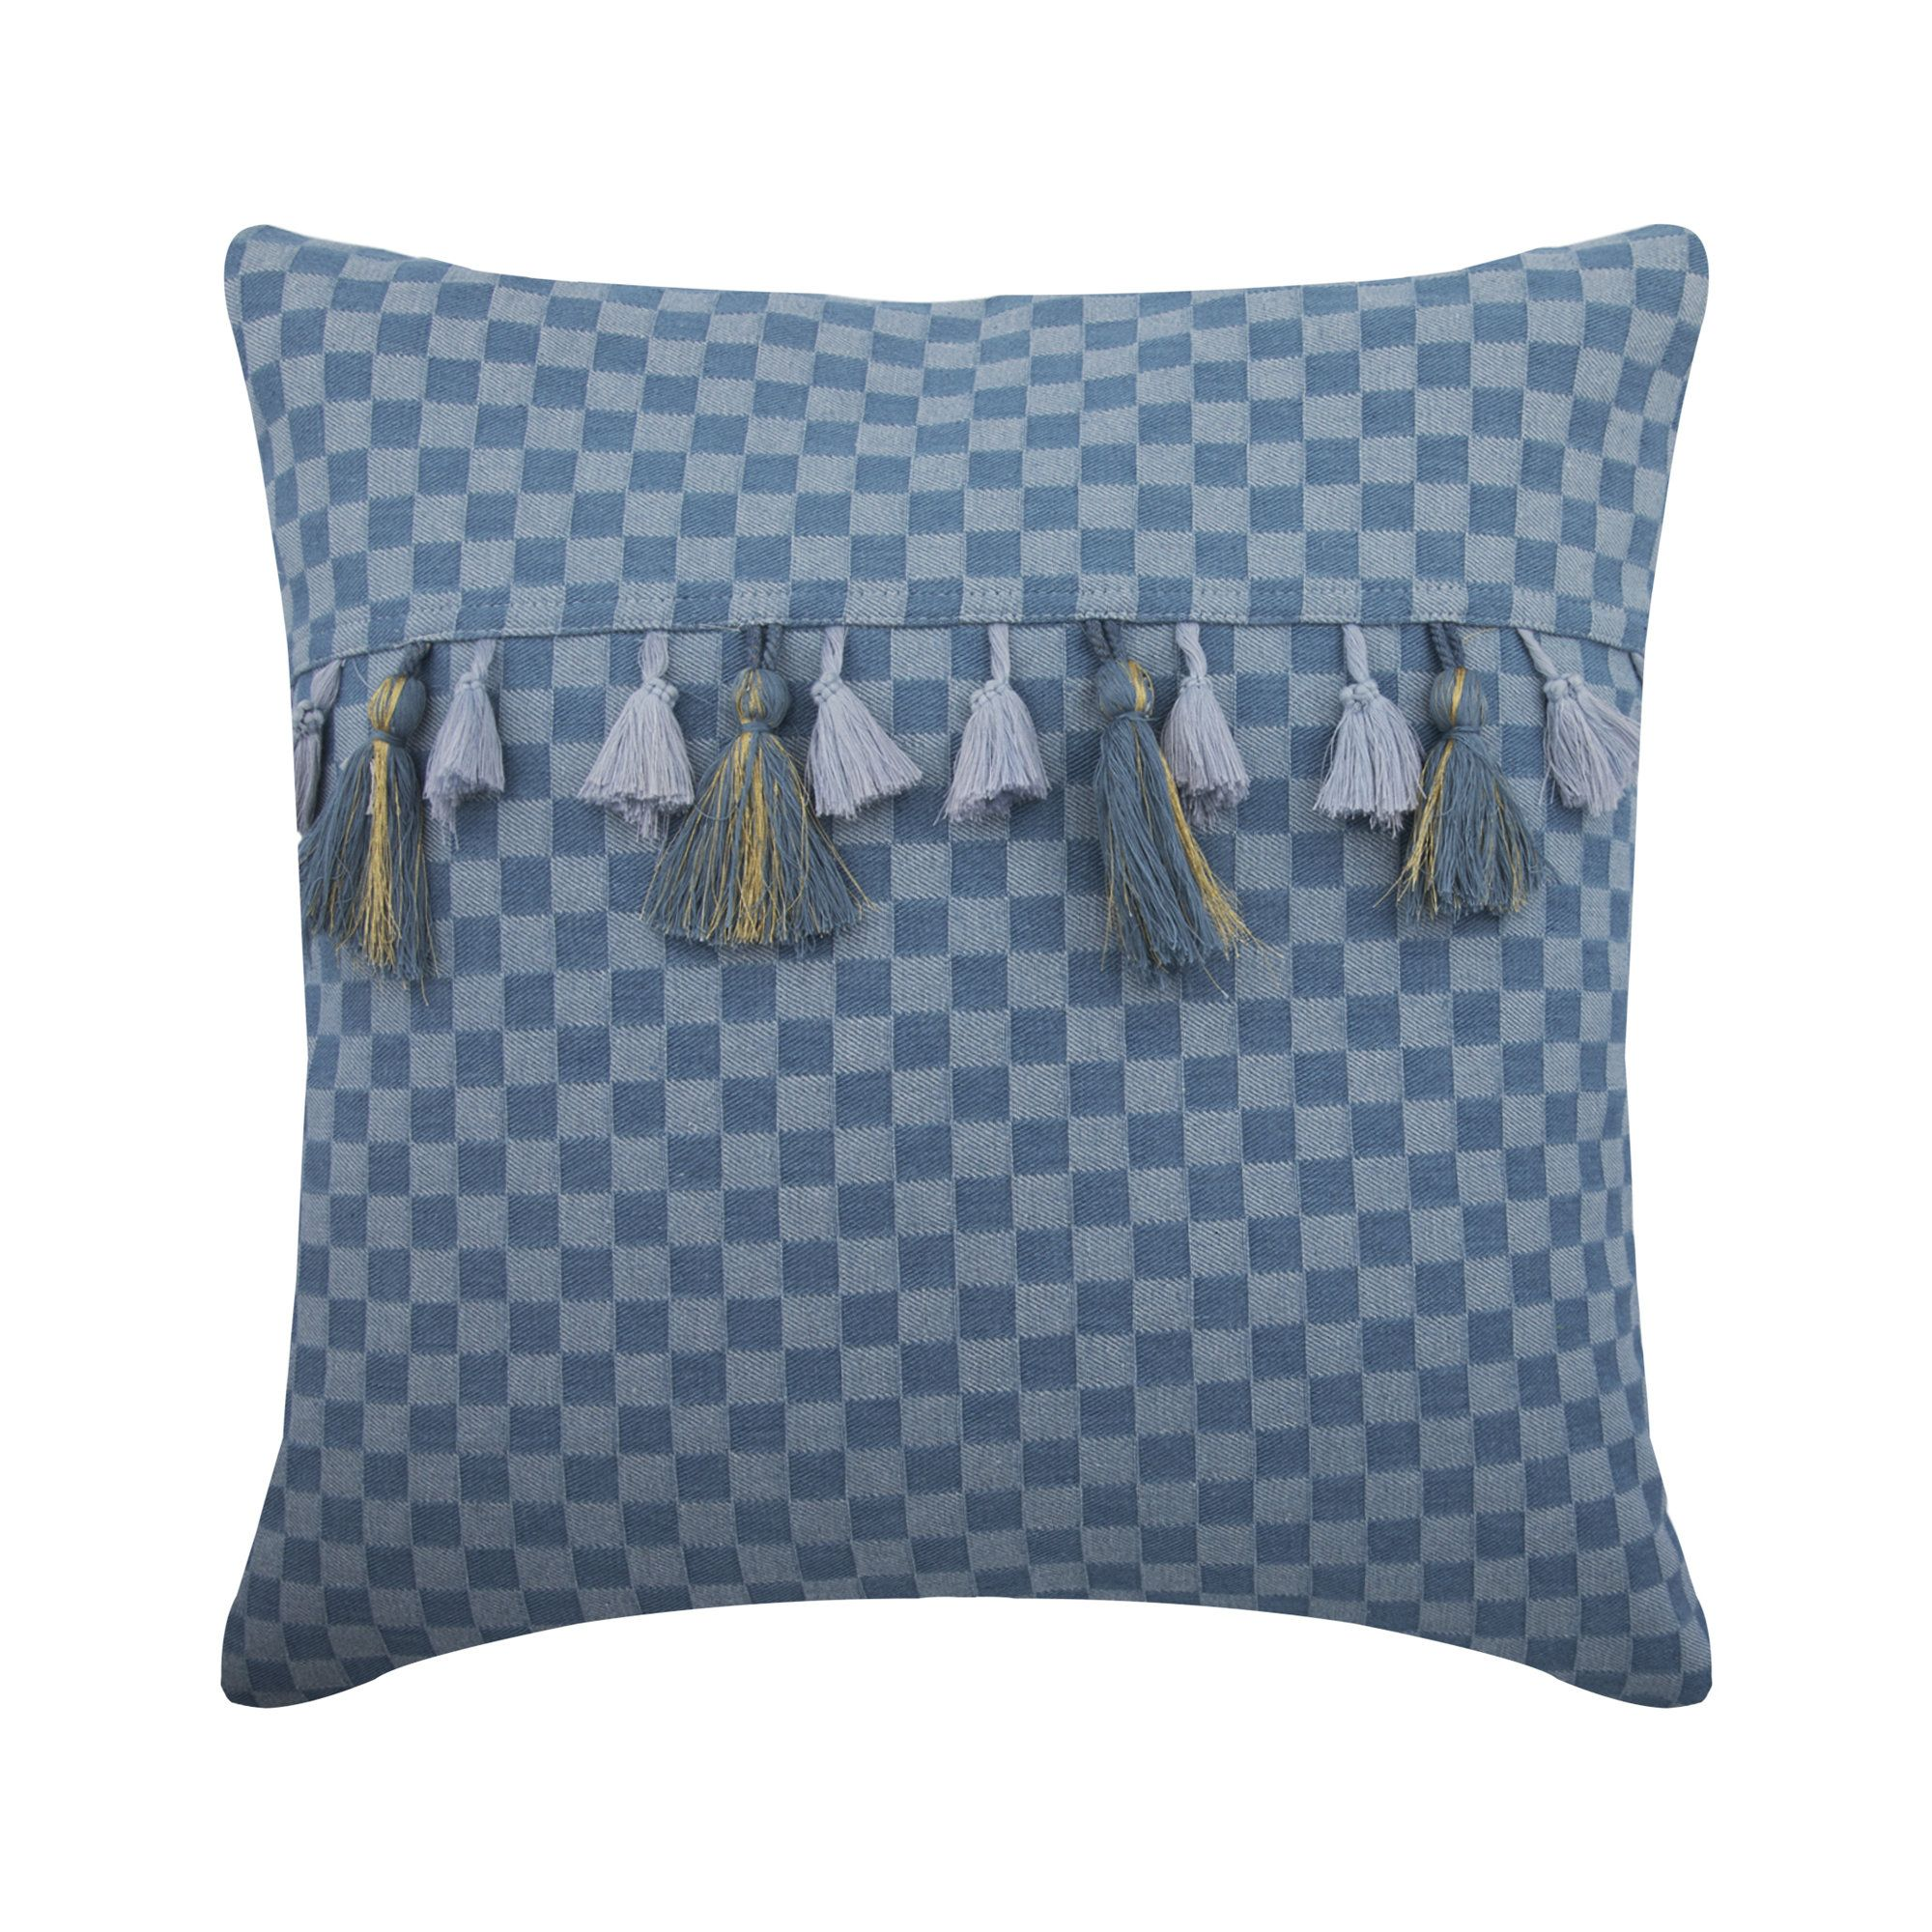 Denim Blue Couch Pillow 16x16 Decorative Couch Etsy In 2020 Blue Sofa Throw Blue Sofa Blue Pillow Covers